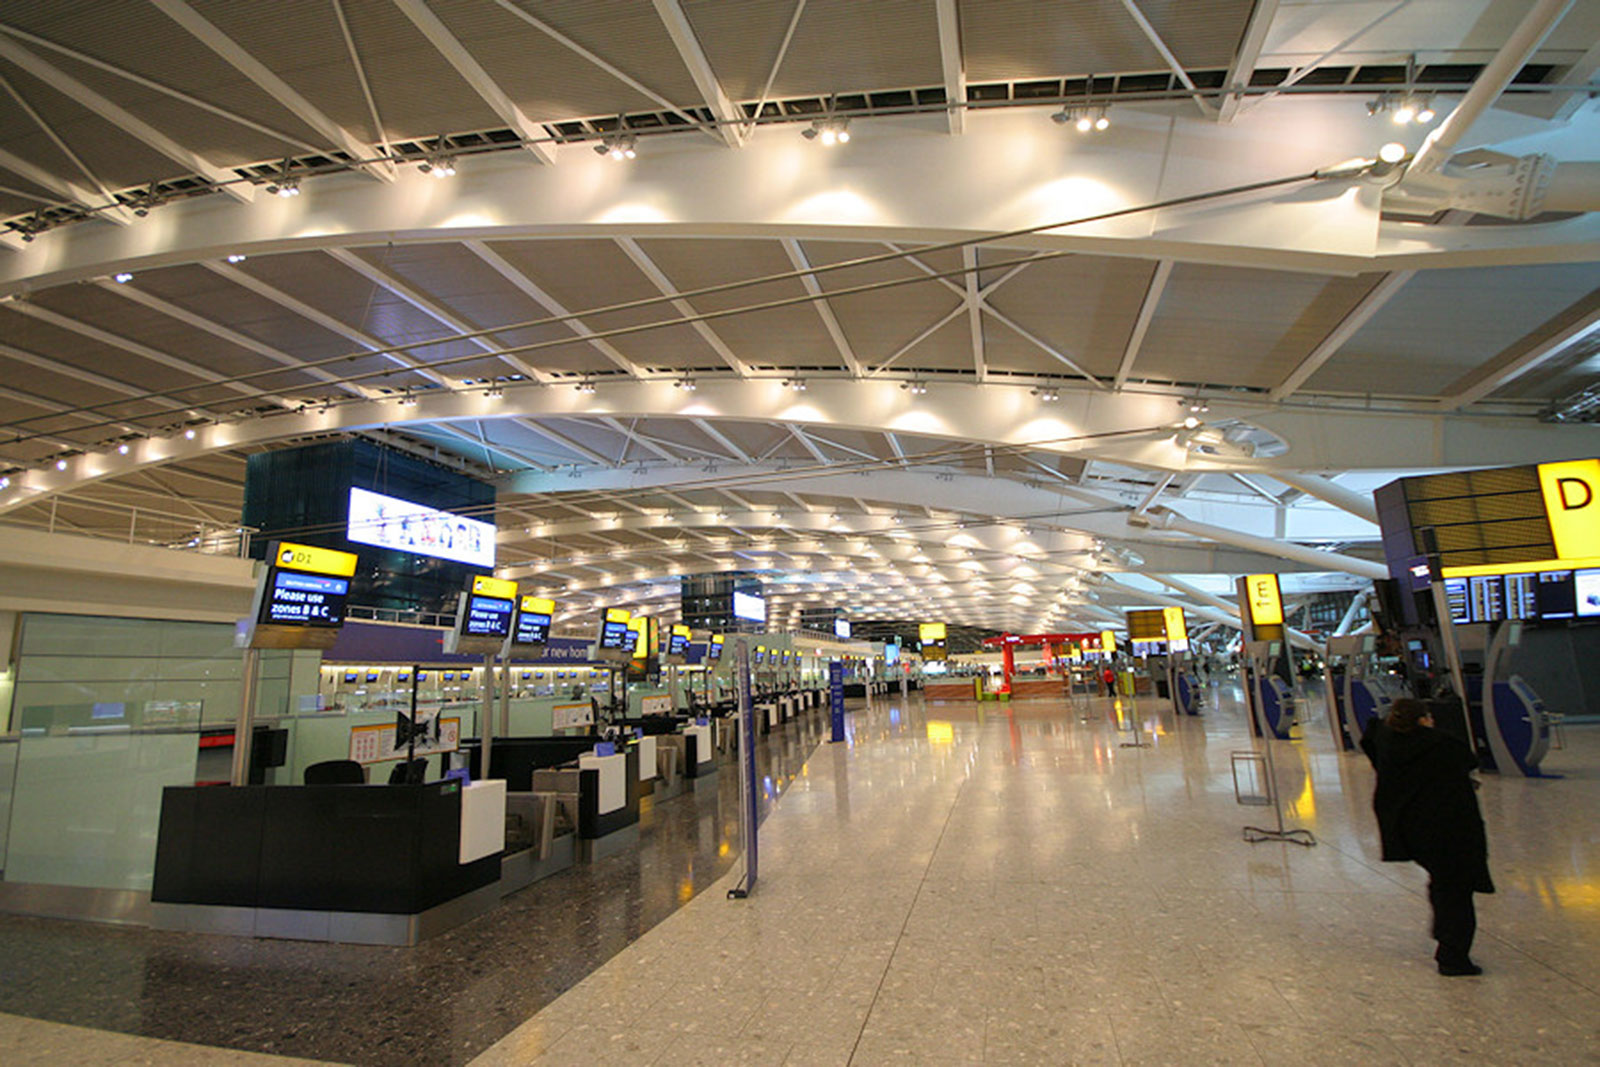 Backpainted Glass Installations, Heathrow Airport